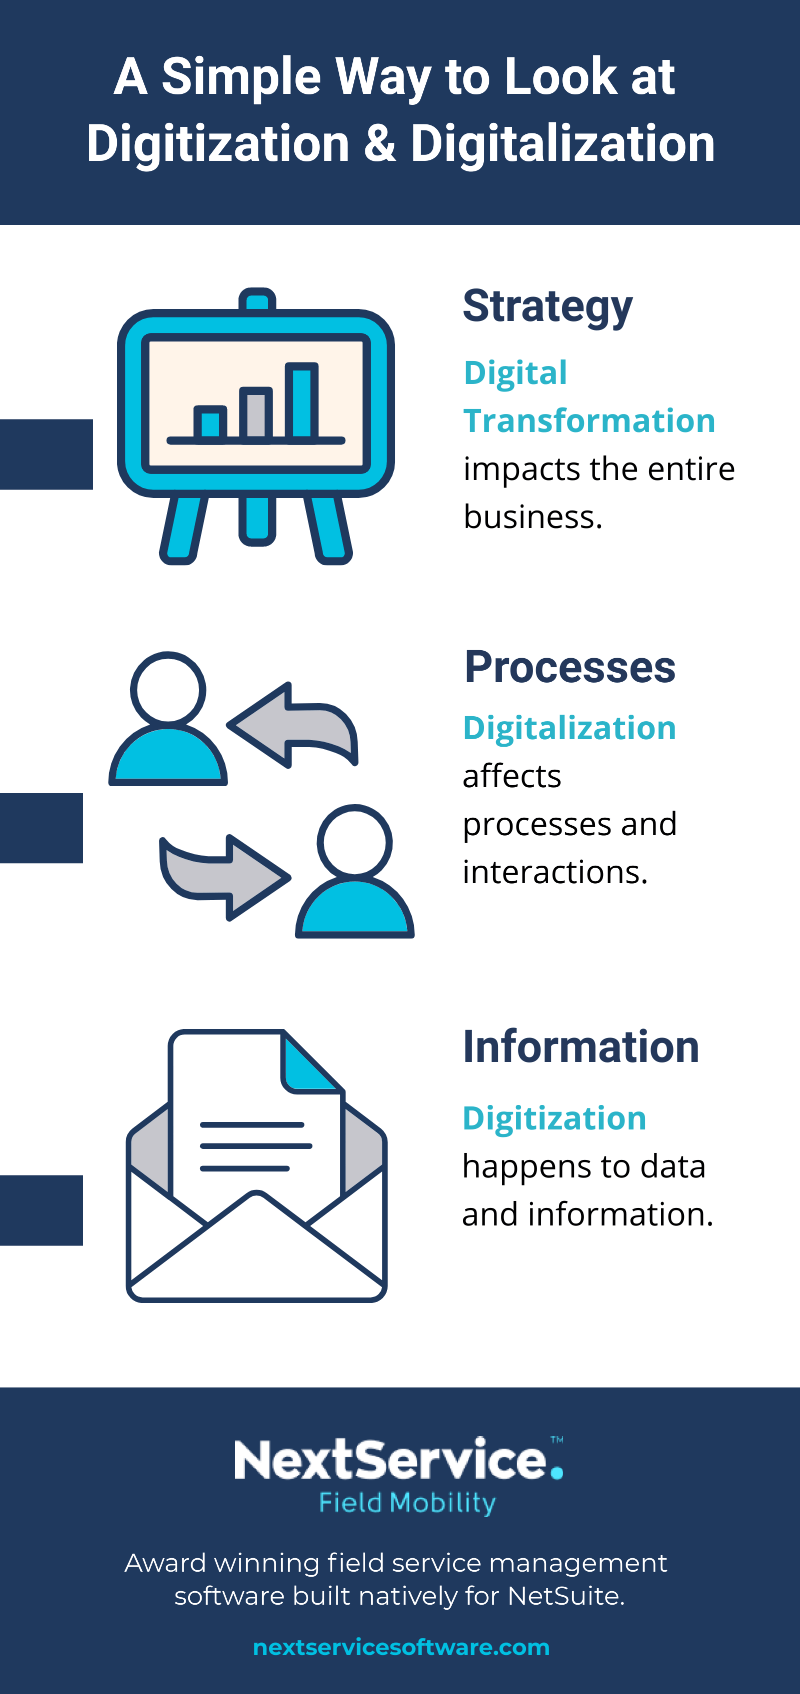 Digitze vs Digitalize - A Simple Way to Look at It by Granularity